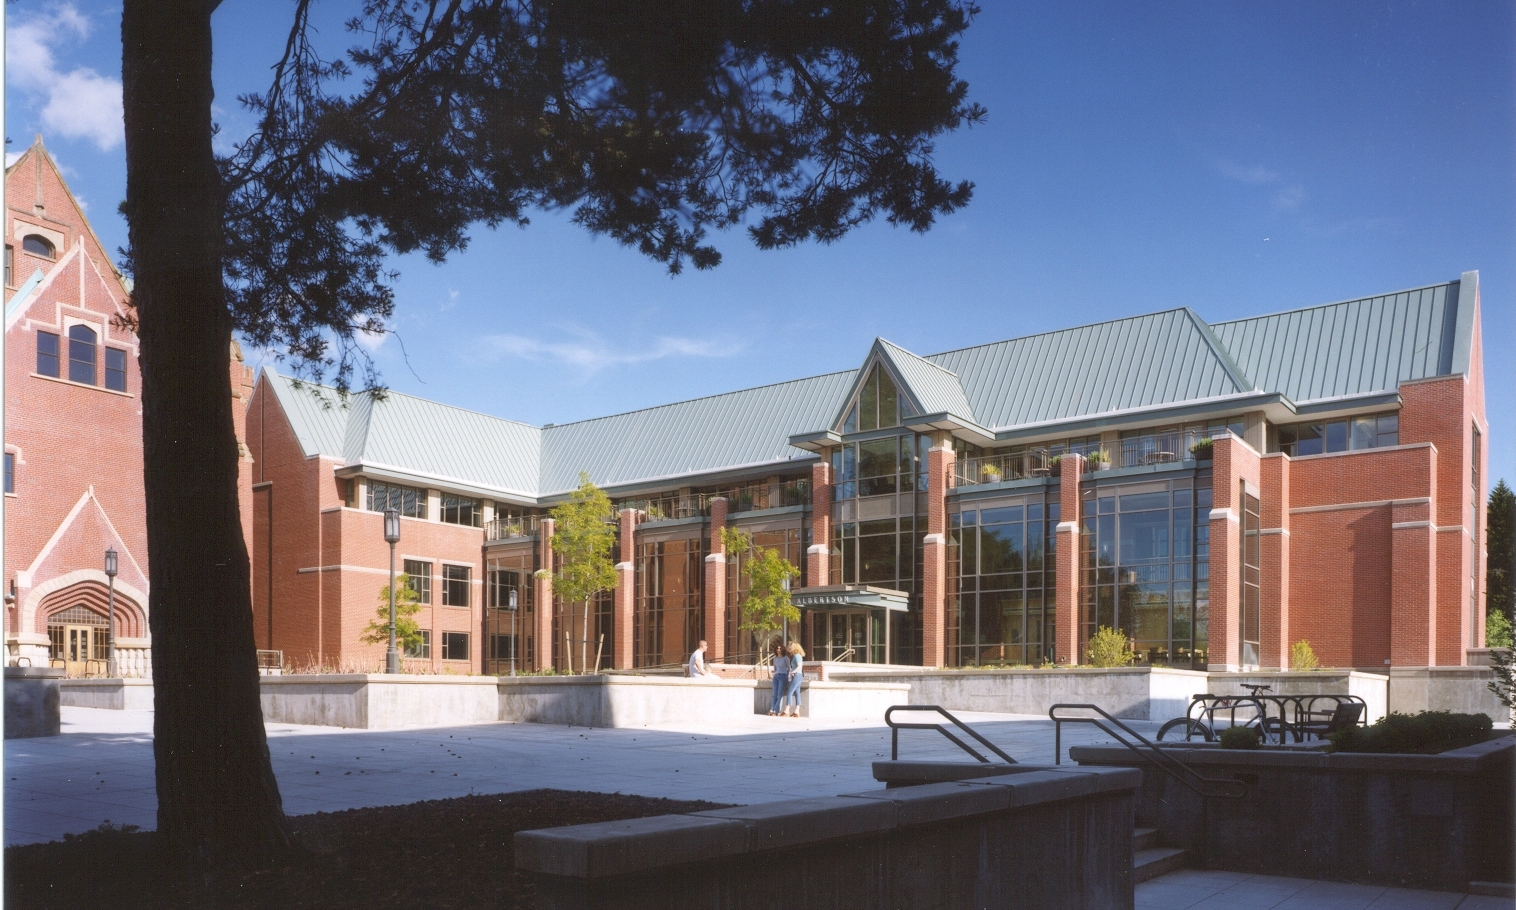 Owner: University of Idaho Location: Moscow, ID   The design of this facility addressed the campus wide need to develop a long term site and building design concept that would unify the Historic Zone of campus. The project re-clad an existing office building to provide a complementary proportion and detail to the historic Administration Building that is sited directly adjacent. This project was the the winner of the 2004 AIA Award of Merit in Architecture.